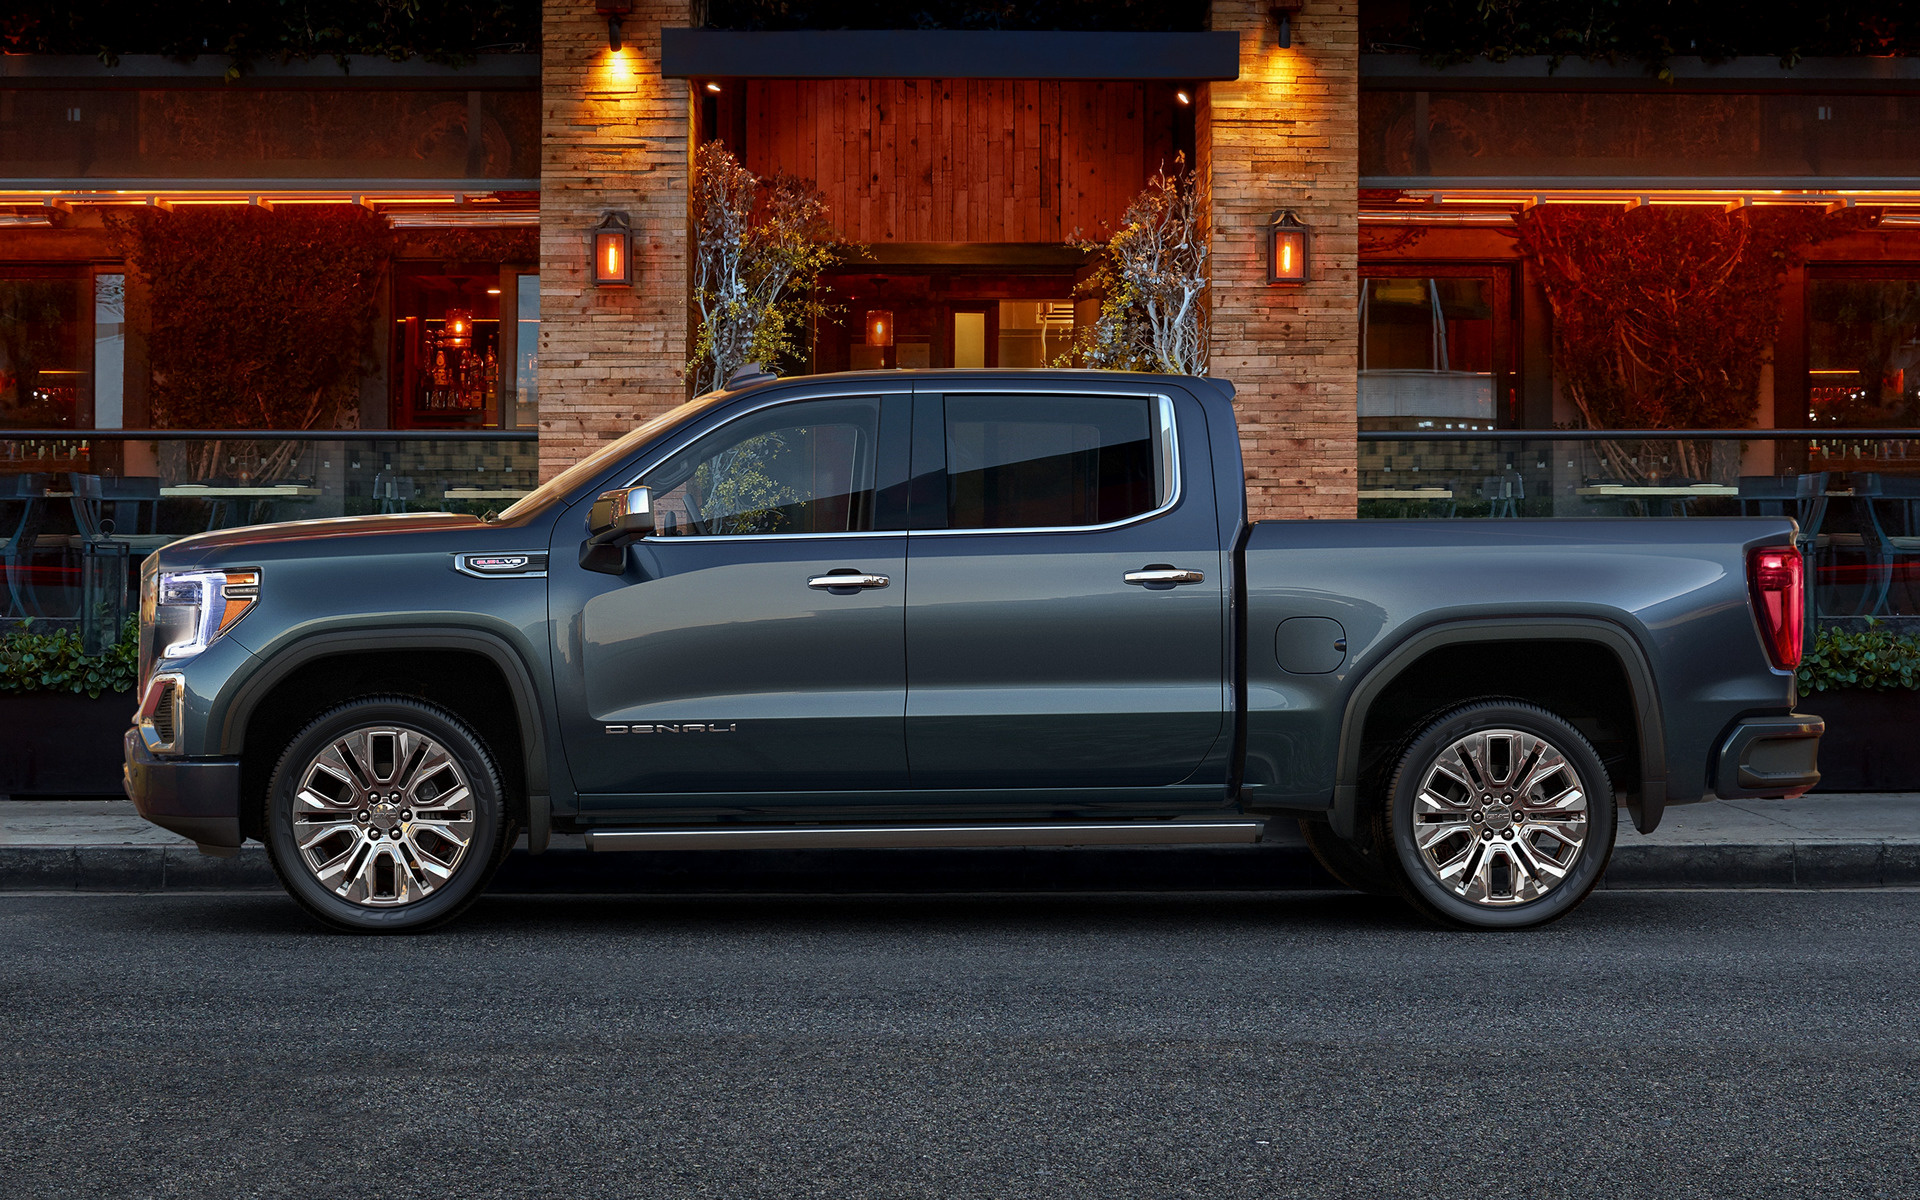 GMC Sierra Denali Crew Cab 2019 Wallpapers And HD Images